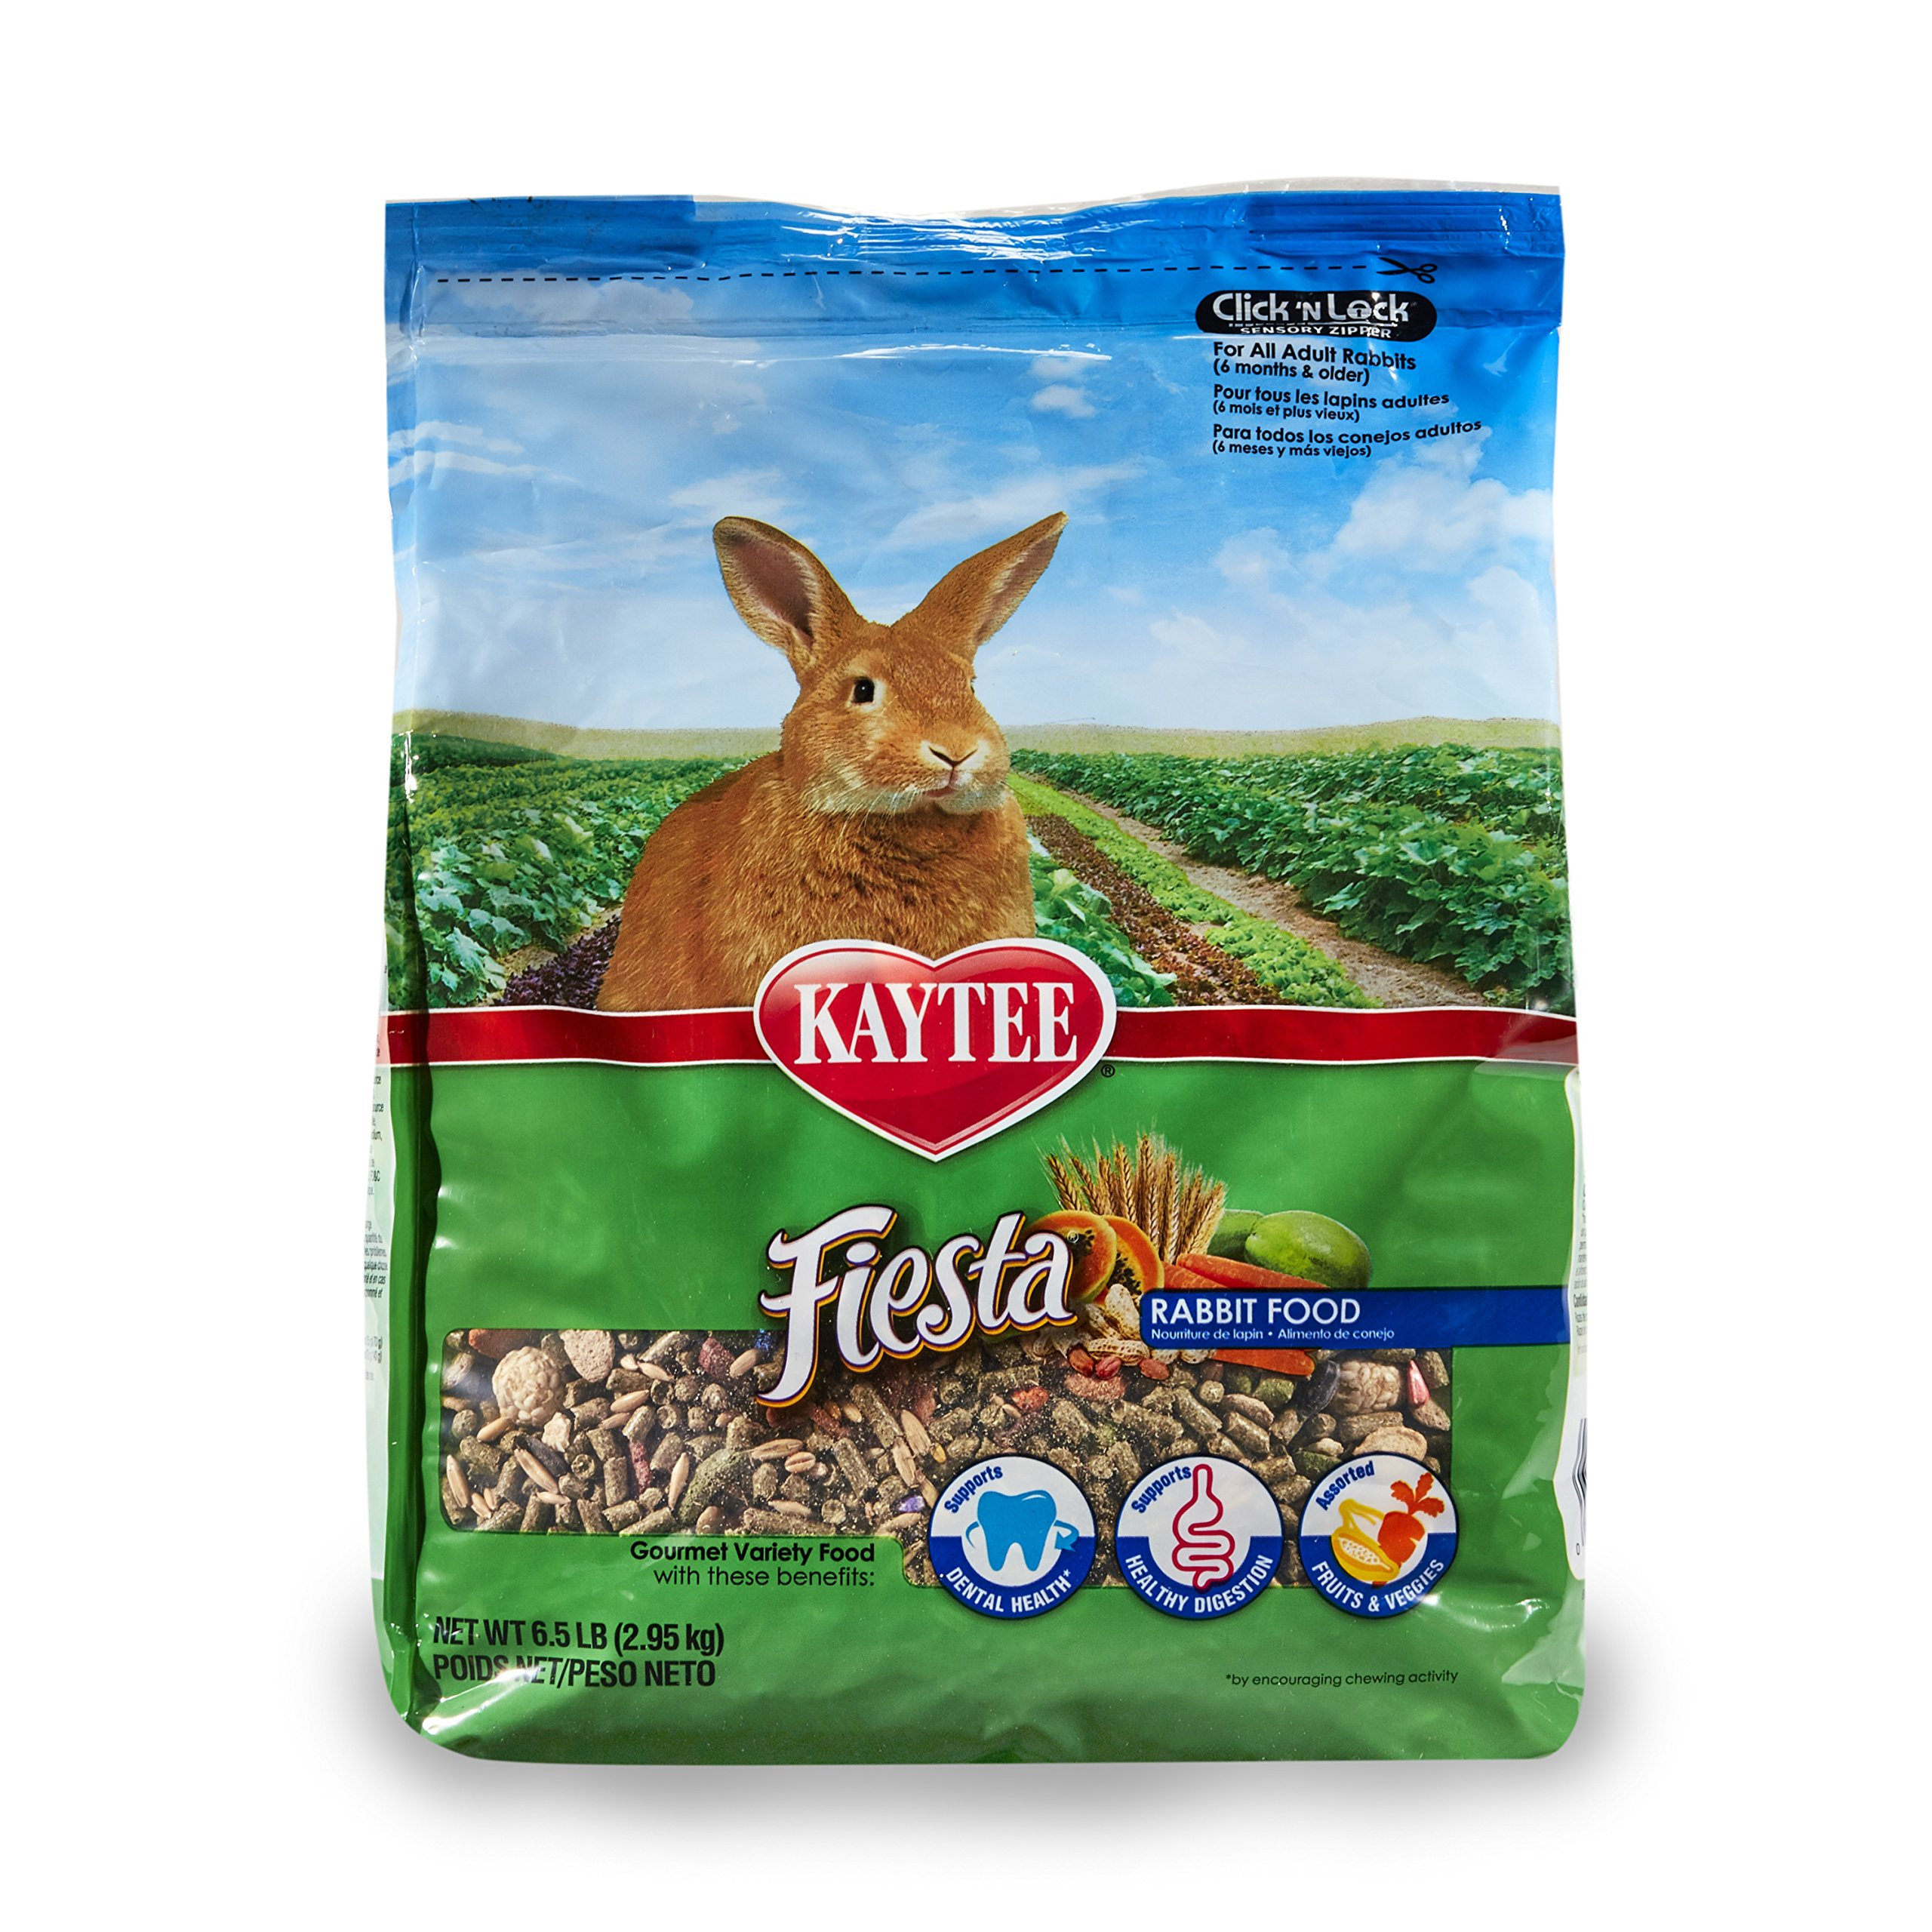 Kaytee Fiesta Rabbit Food, 6.5-lb bag